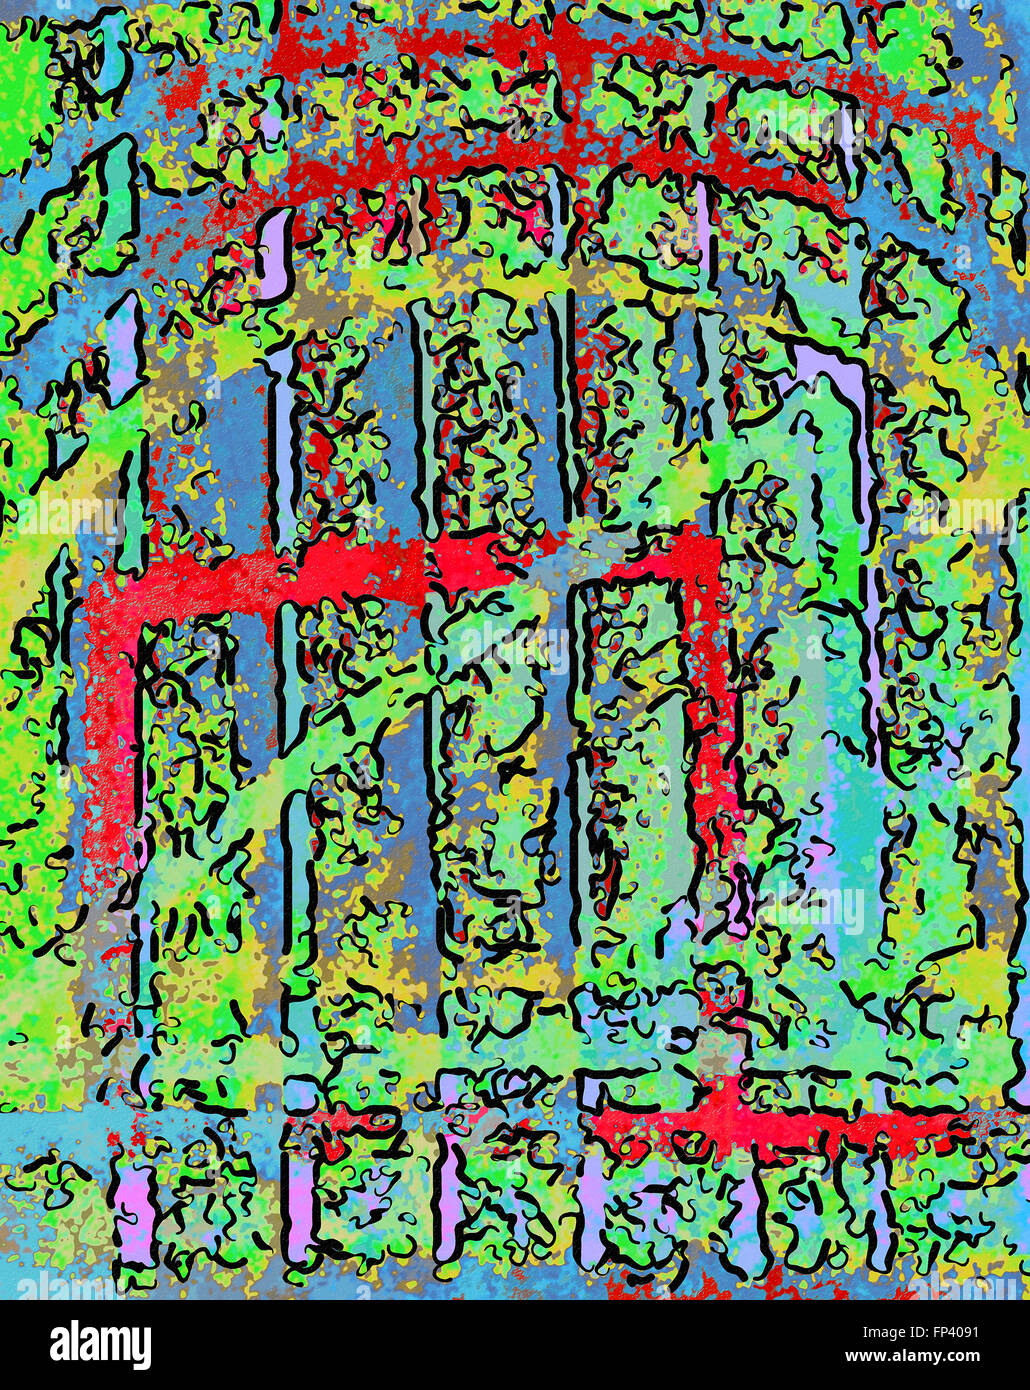 Abstract Image Of Garden Iron Gates With Red Outlines And Green Leaves